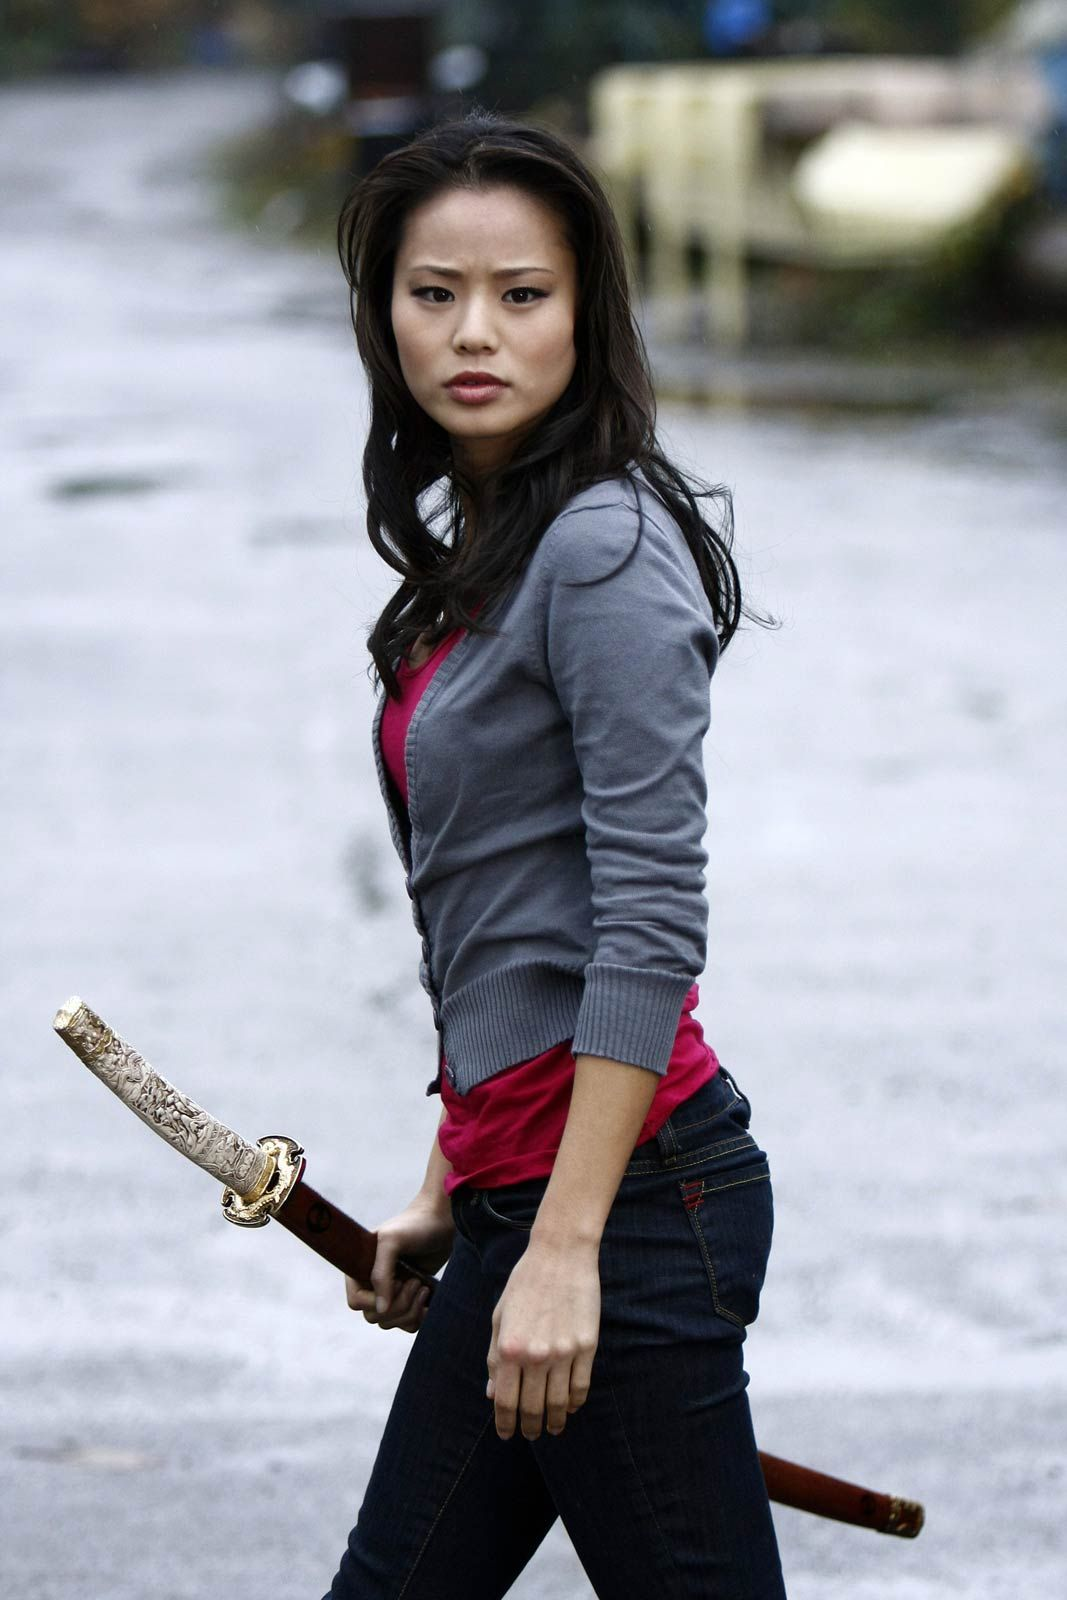 samurai girl movie Jamie Chung